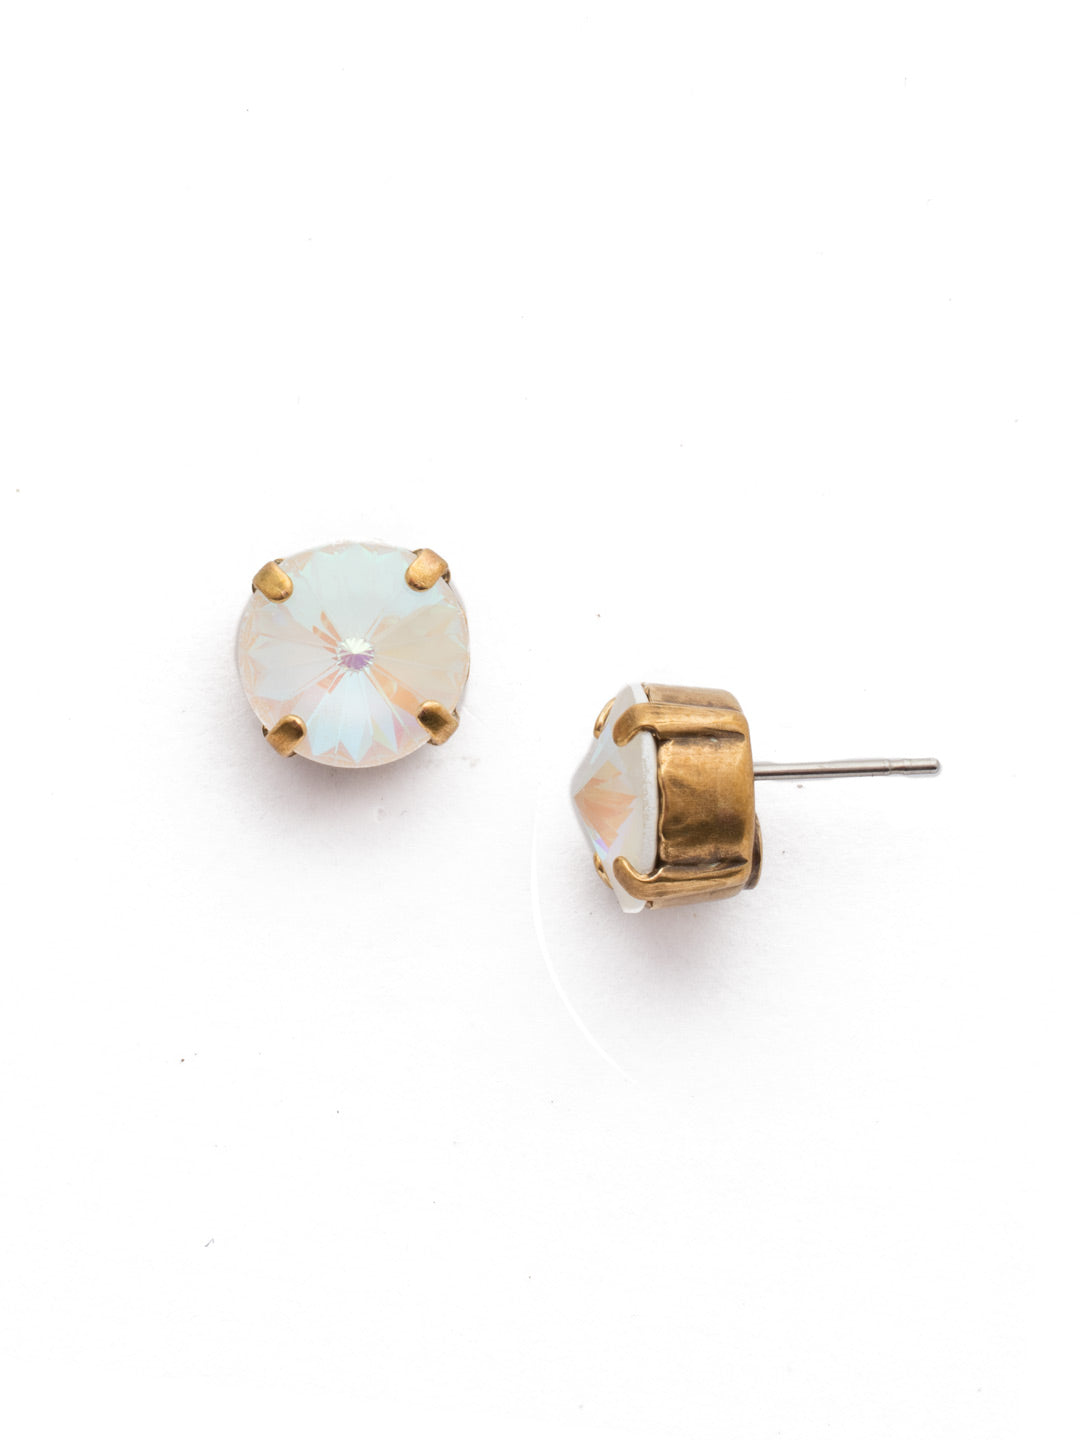 Round Crystal Stud Earrings - ECM14AGROB